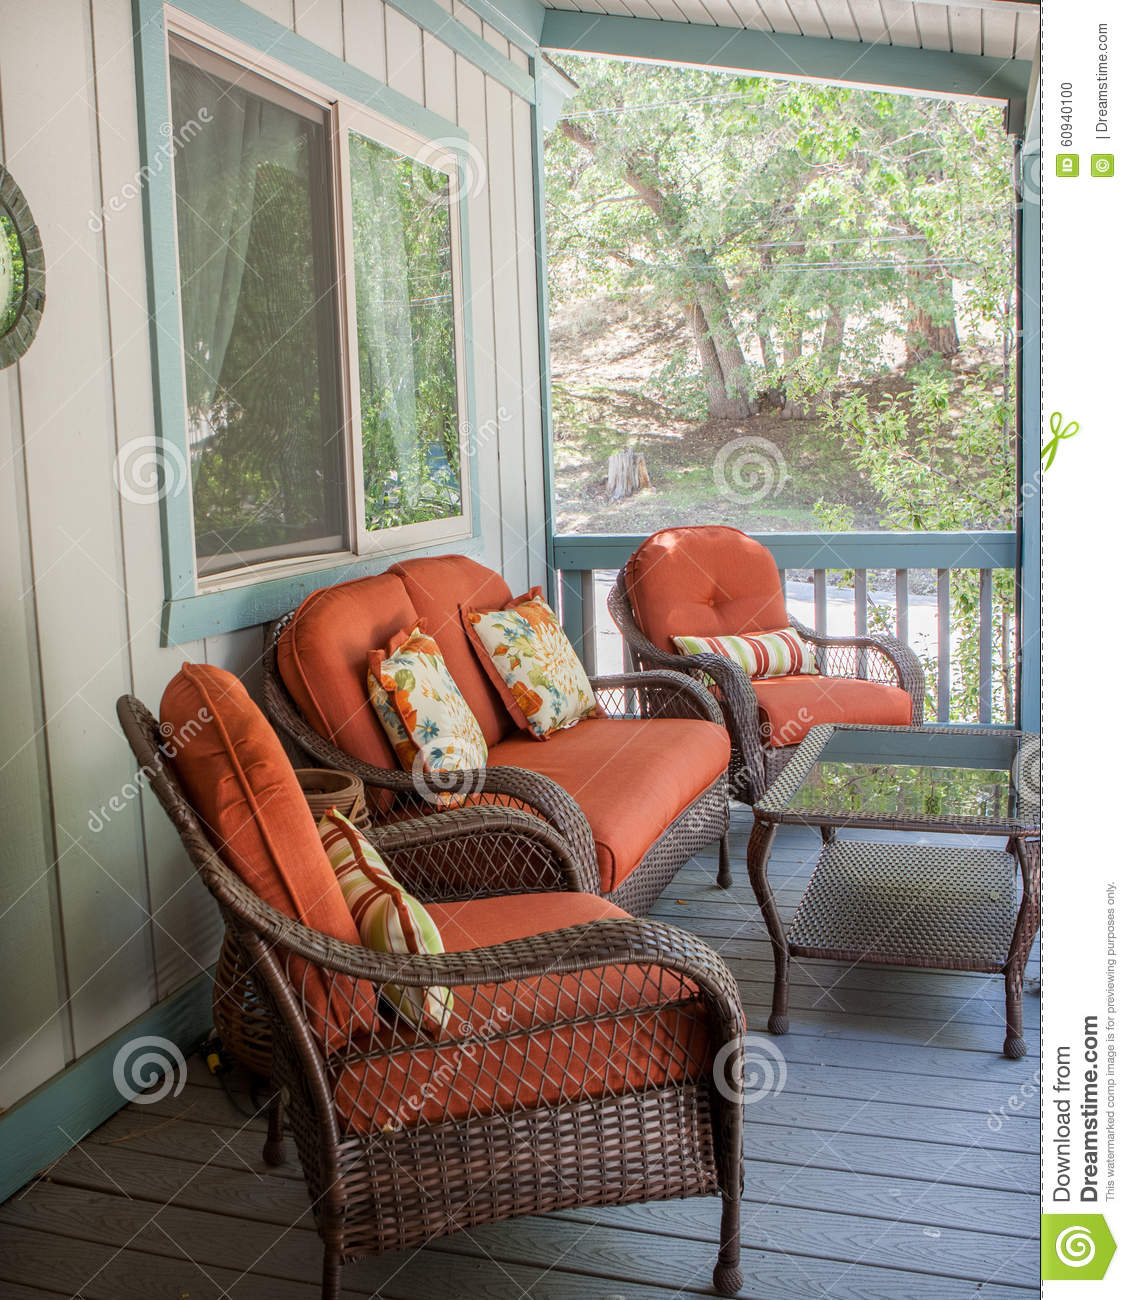 Orange Patio Chairs burnt orange patio furniture outside on the deck stock photo